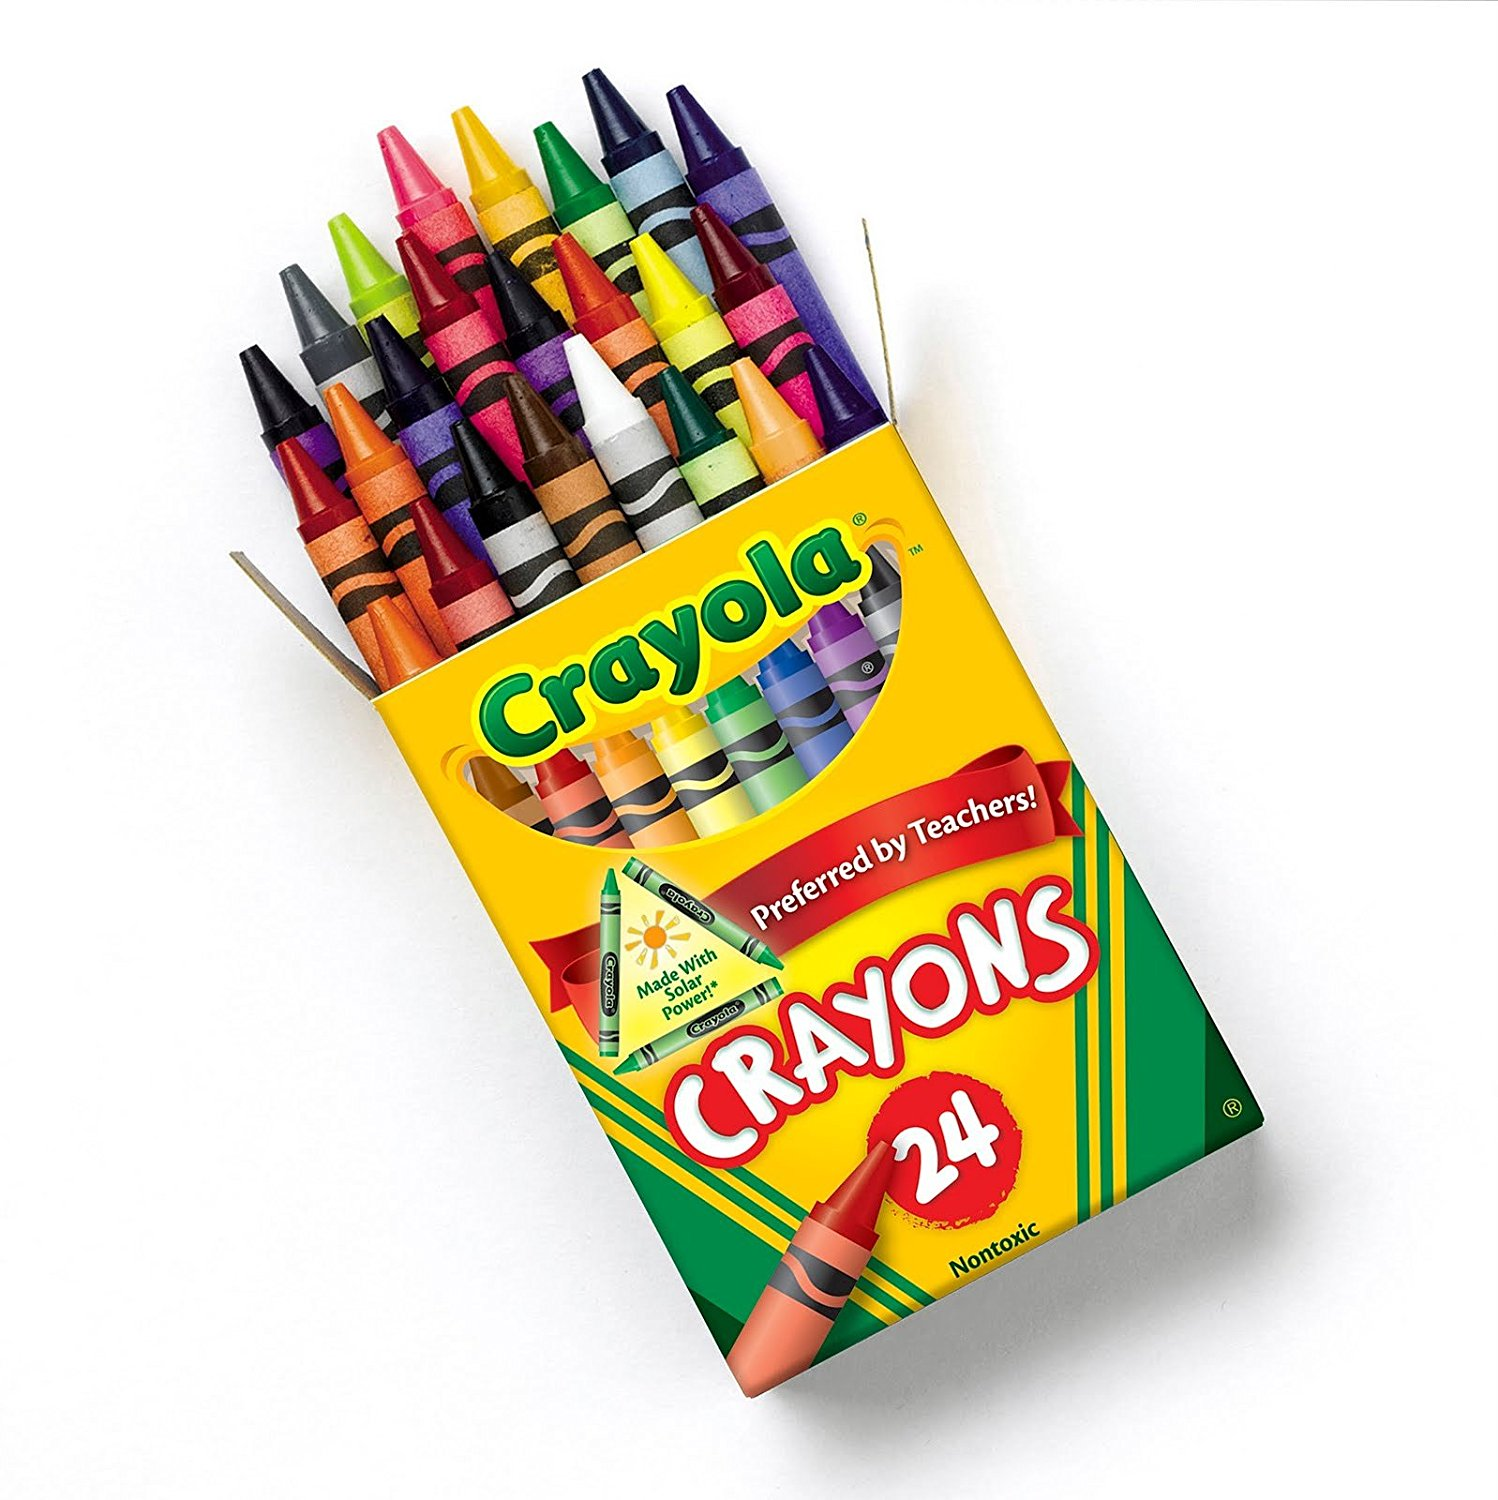 crayola crayons box free download best crayola crayons box on